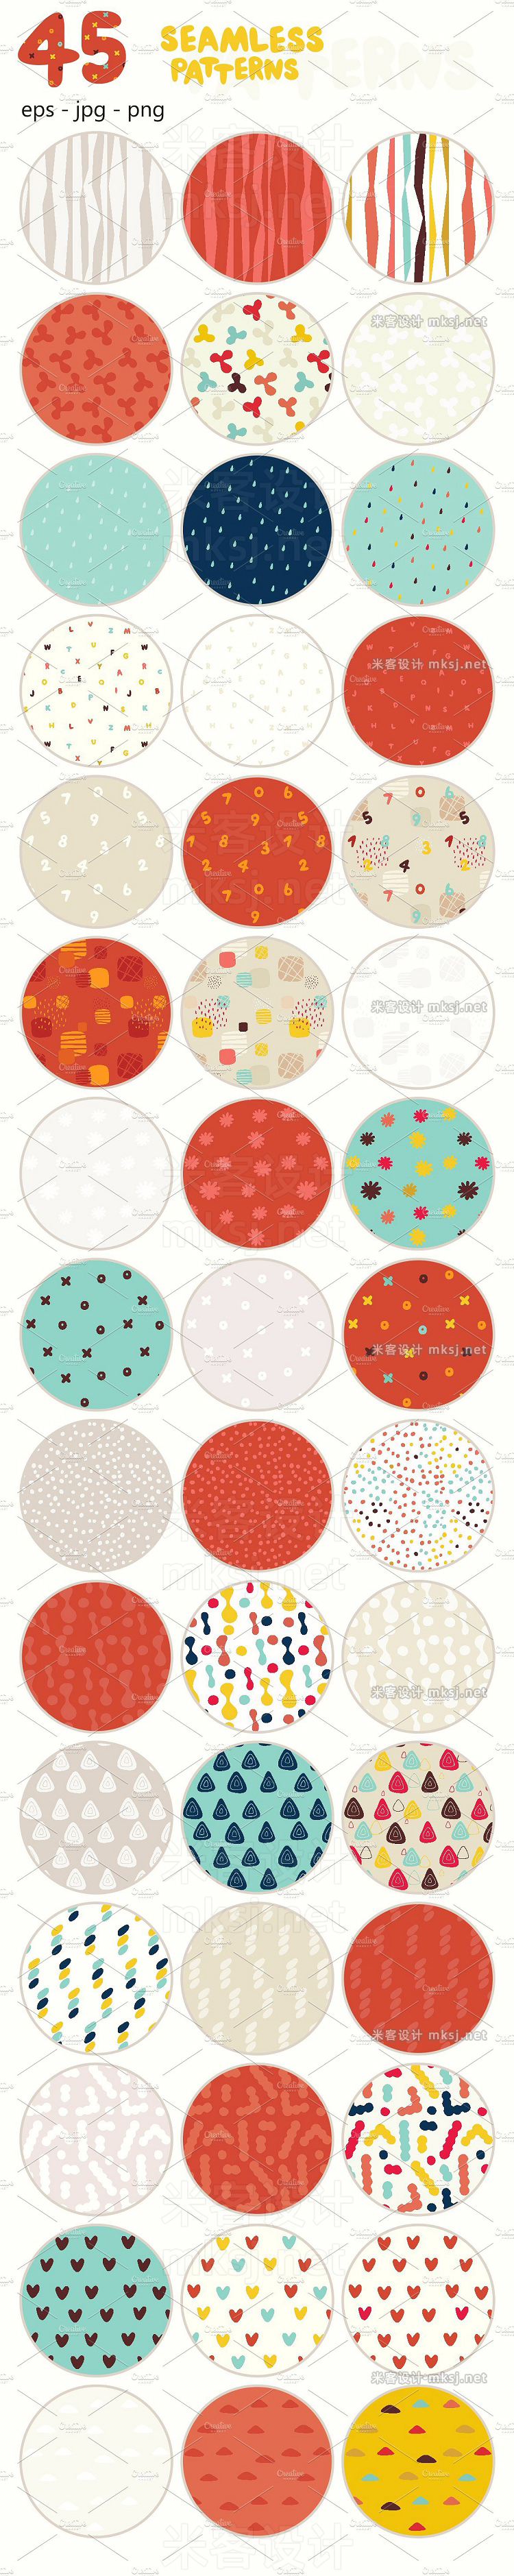 png素材 45 funny seamless patterns